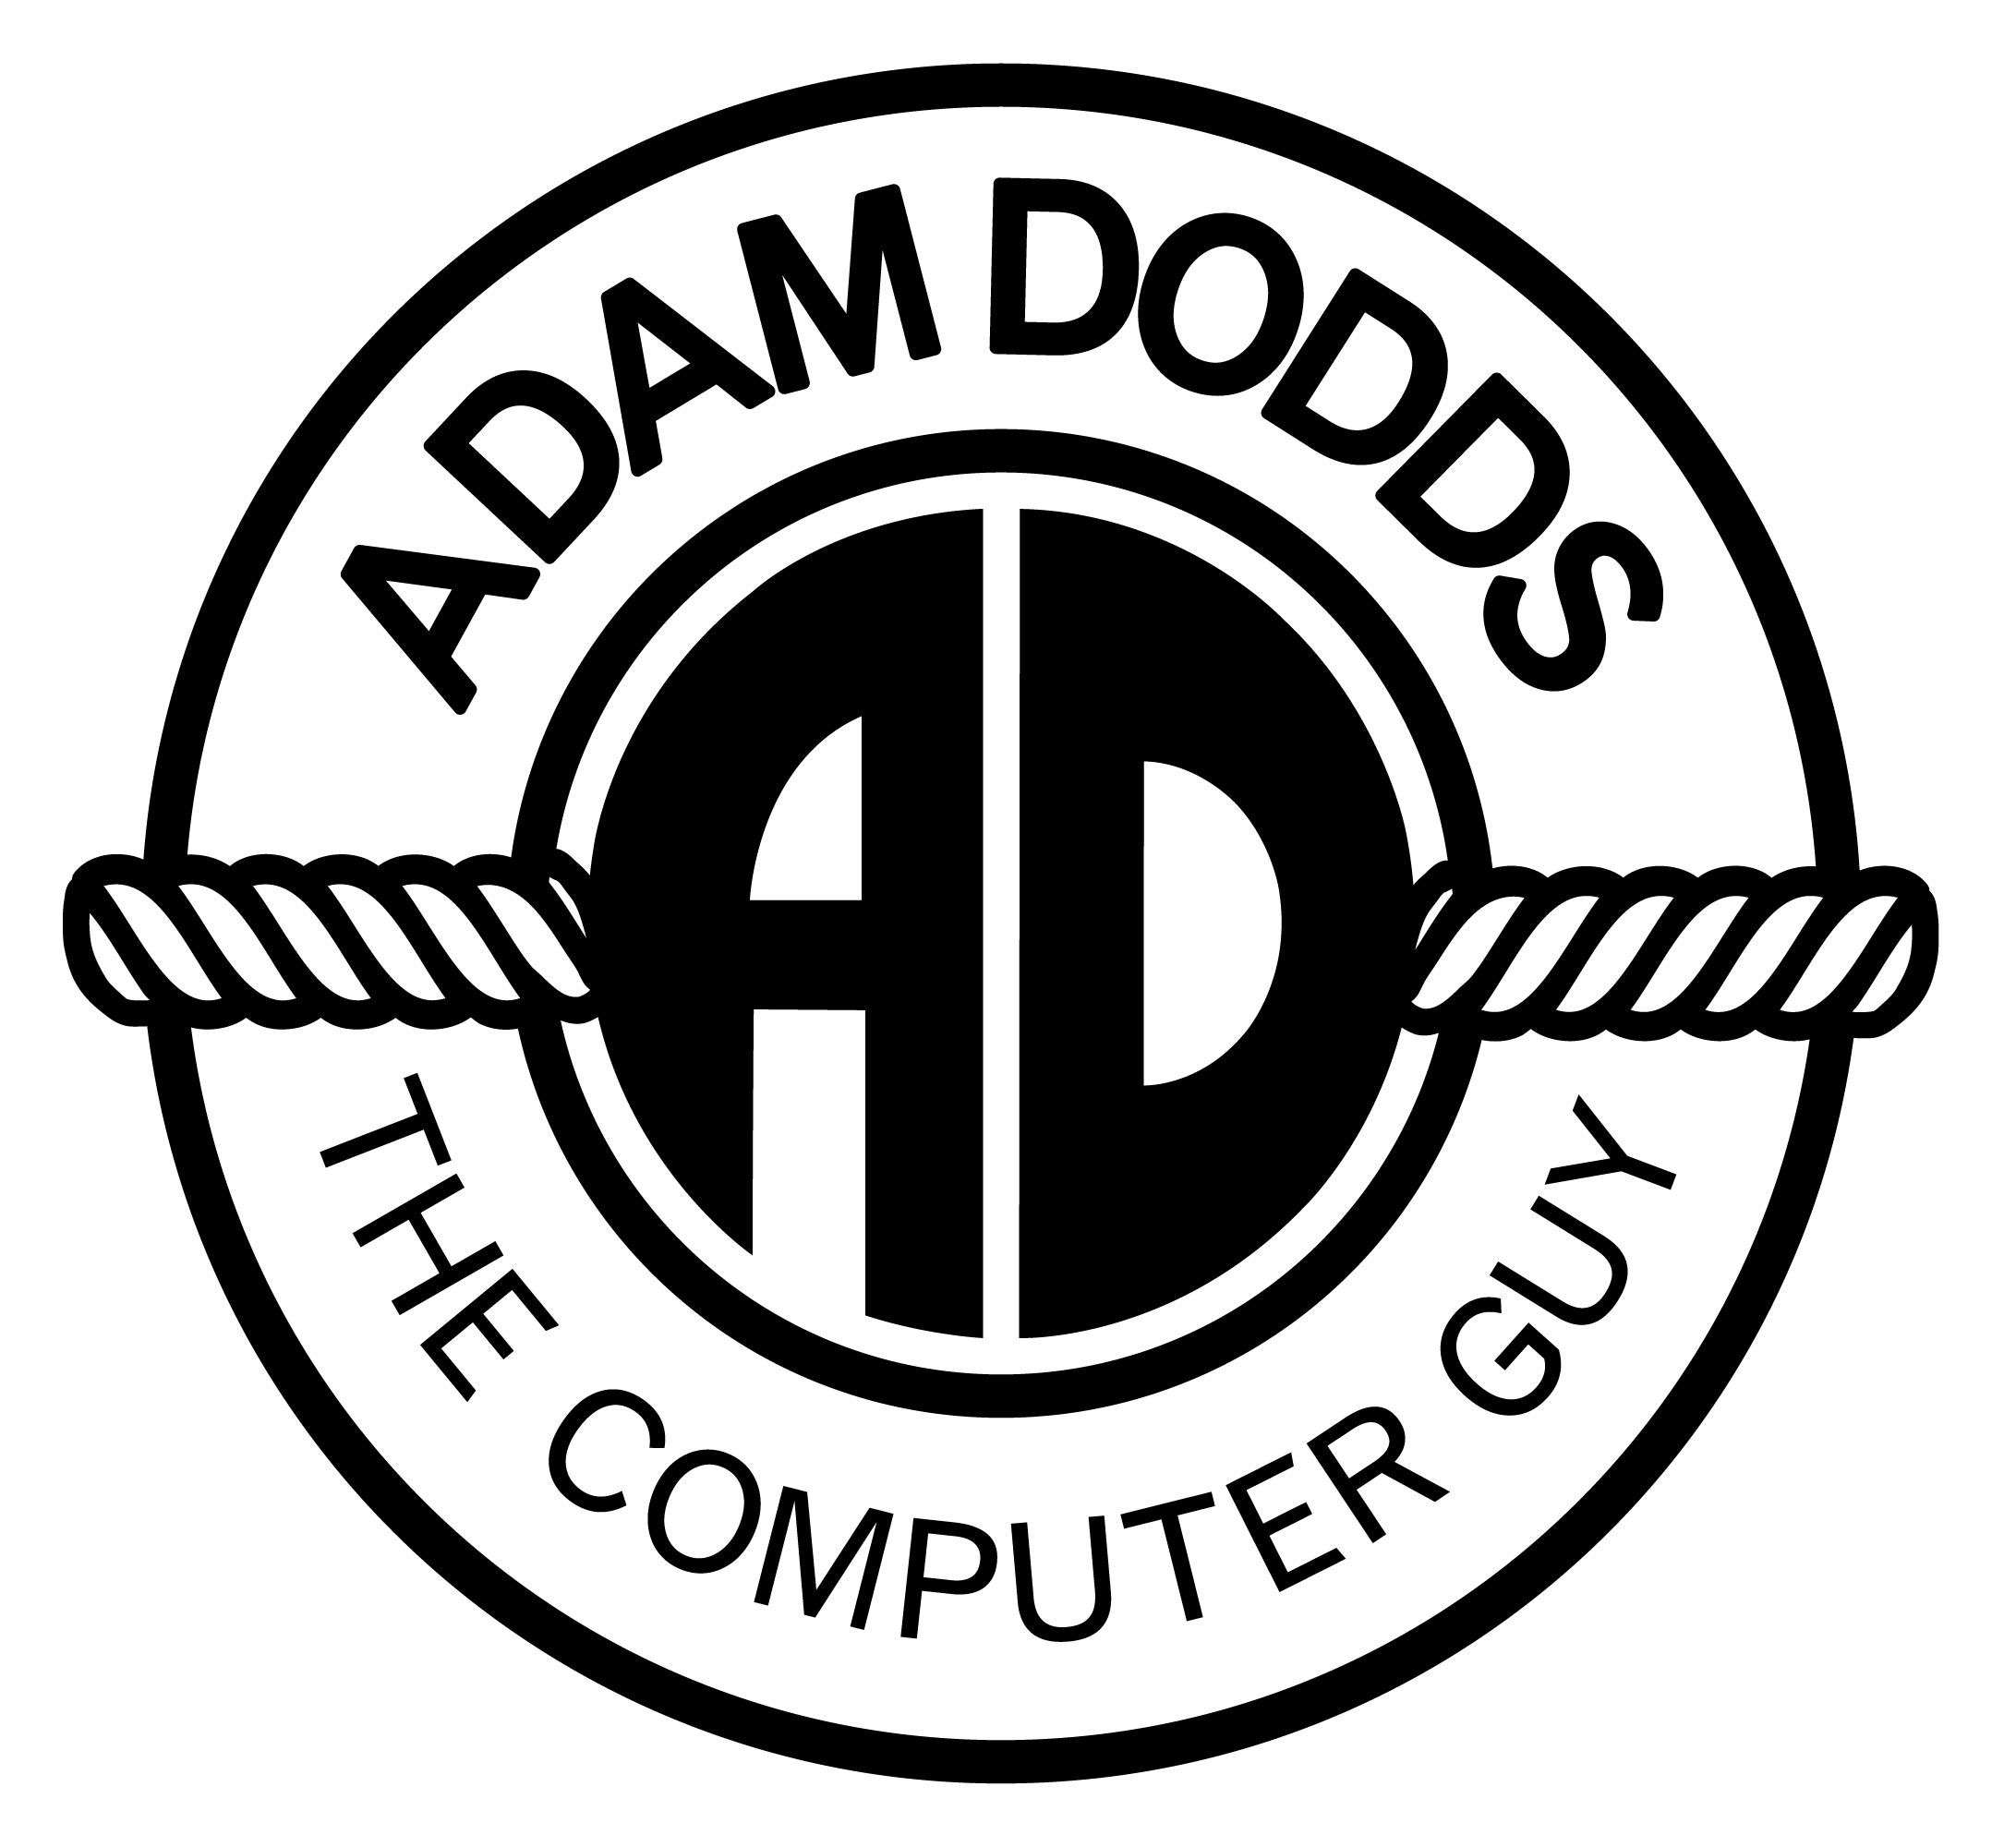 Adam Dodds The Computer Guy | Redlands IT Support